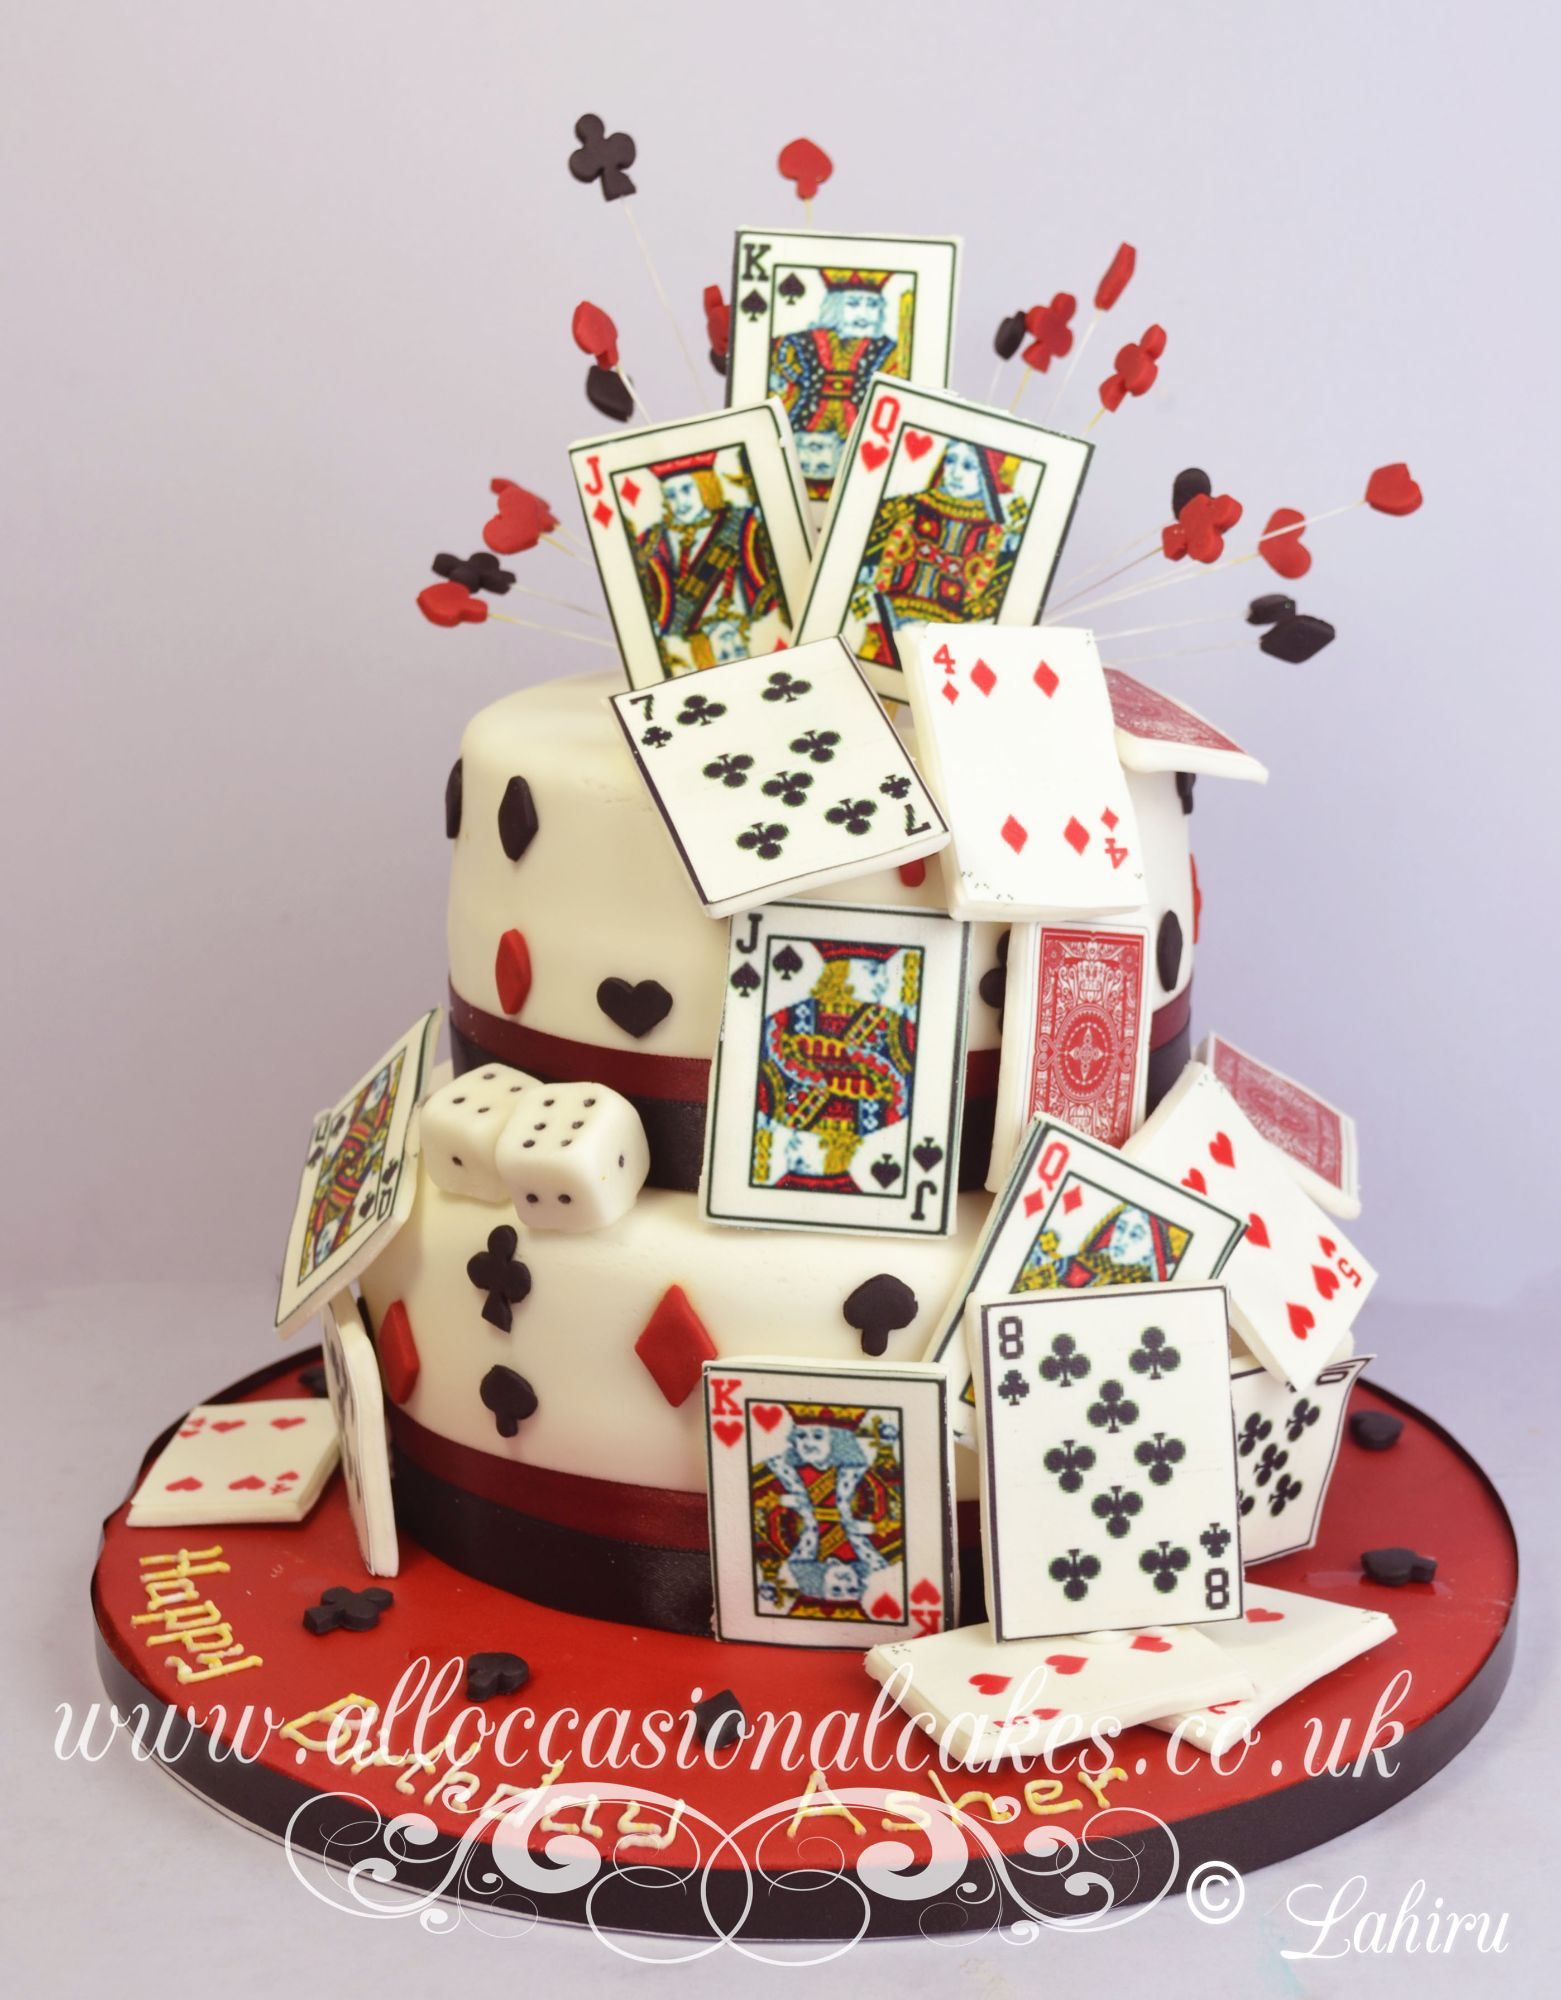 bridge card game birthday cake